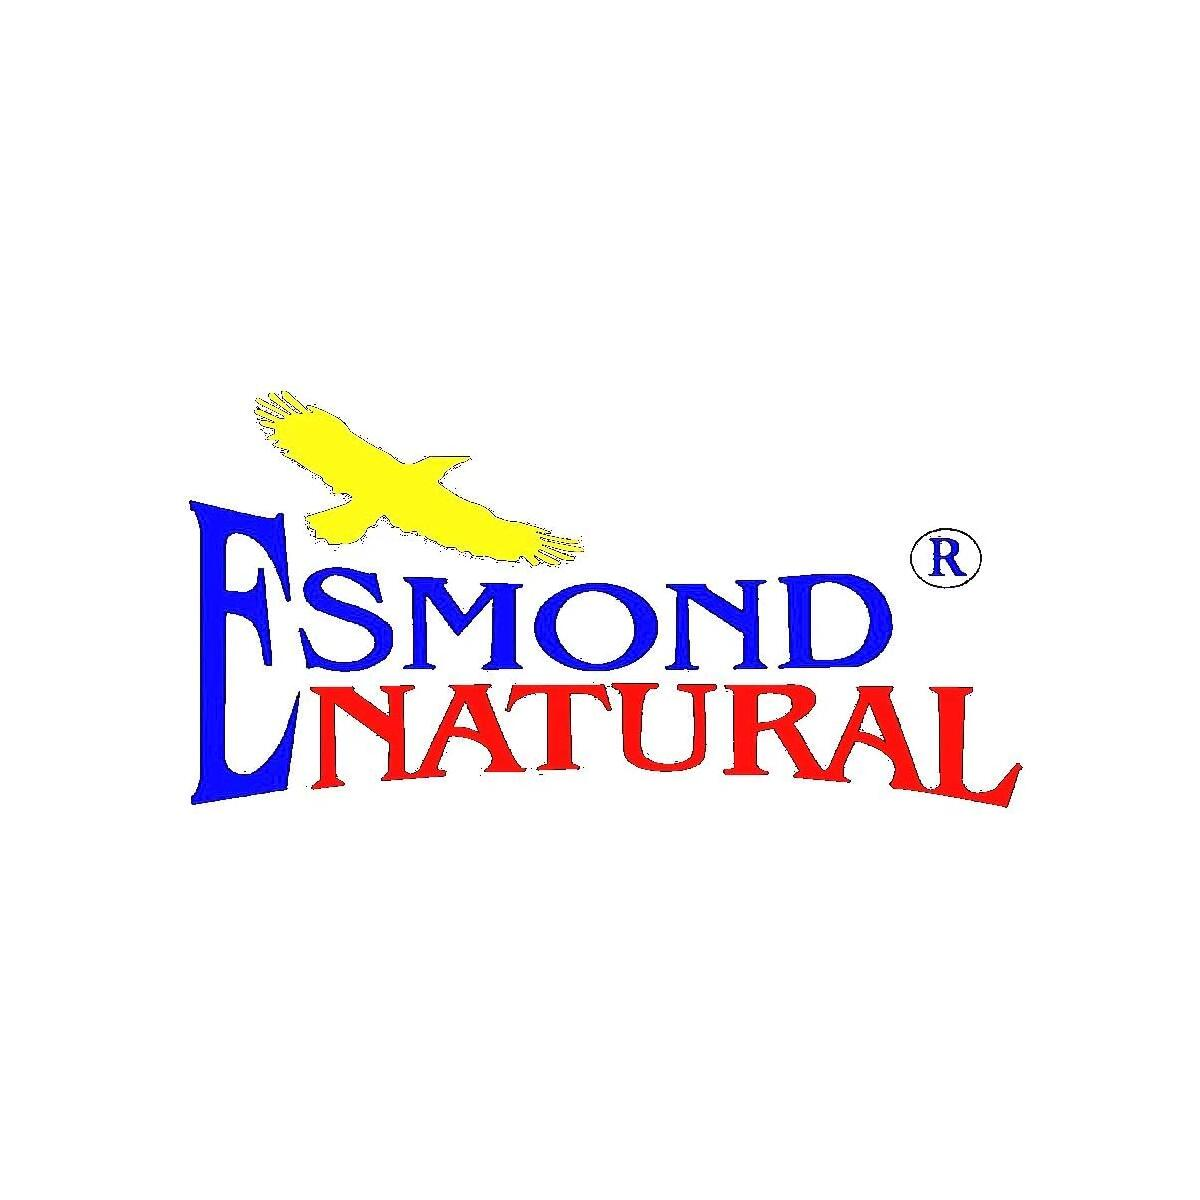 Esmond Natural: Acidophilus Complex (Supports Gastro-Intestinal Health & Physical Functions), GMP, Natural Product Assn Certified, Made in USA-13.6mg, 60 Capsules